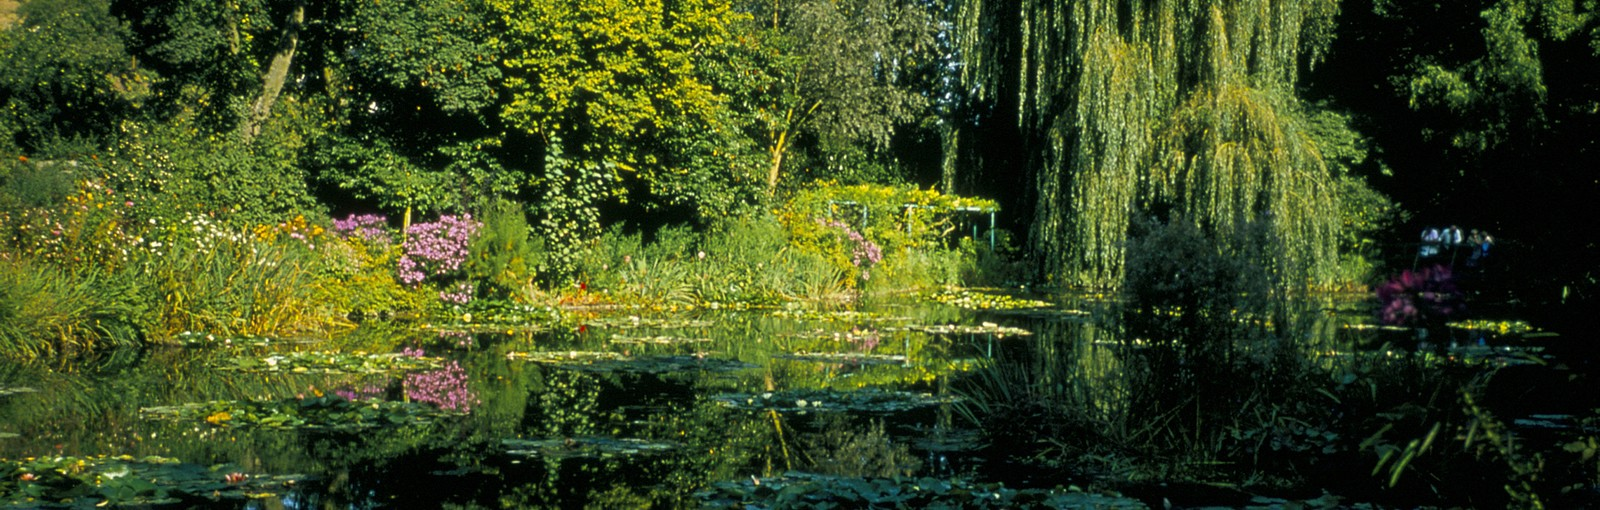 Tours Giverny (or Chartres) and Versailles - Full days - Day tours from Paris